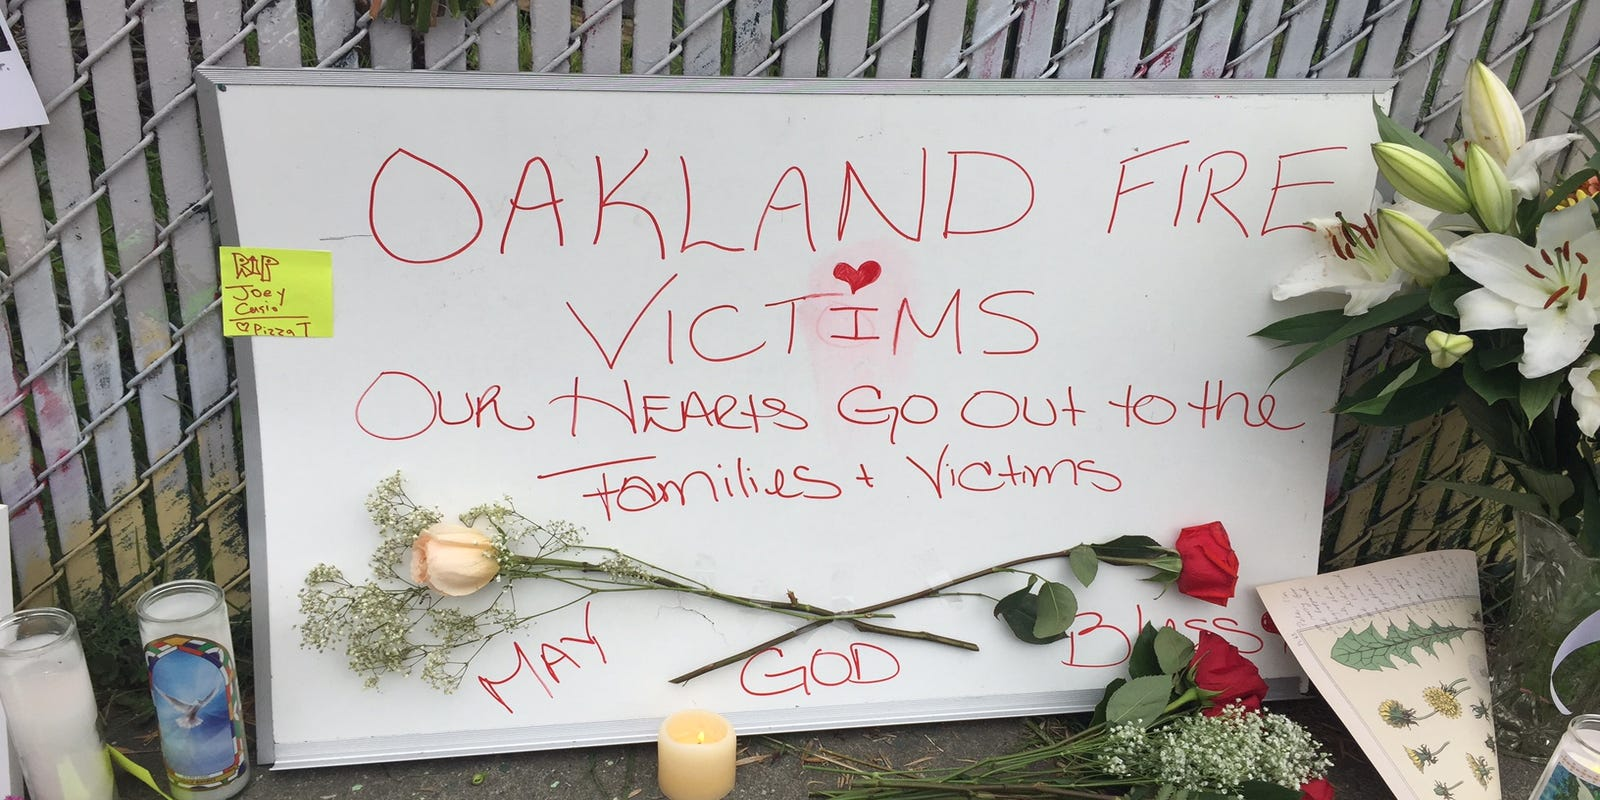 Oakland Fire Victims Came To Find Like Minds